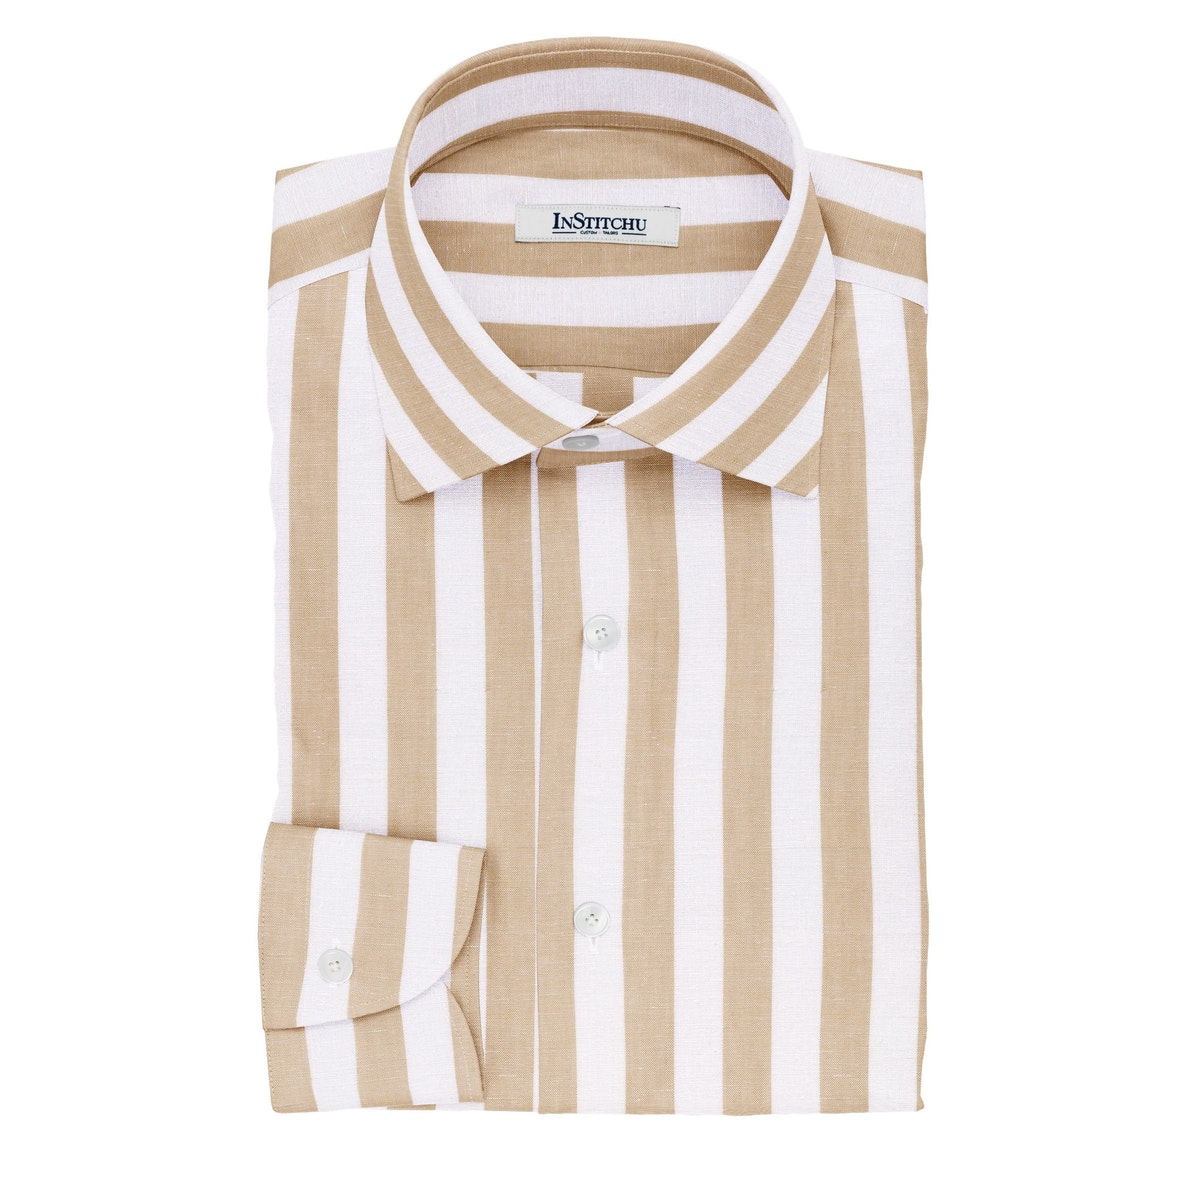 InStitchu Collection The Flynne White and Beige Striped Cotton Linen Shirt